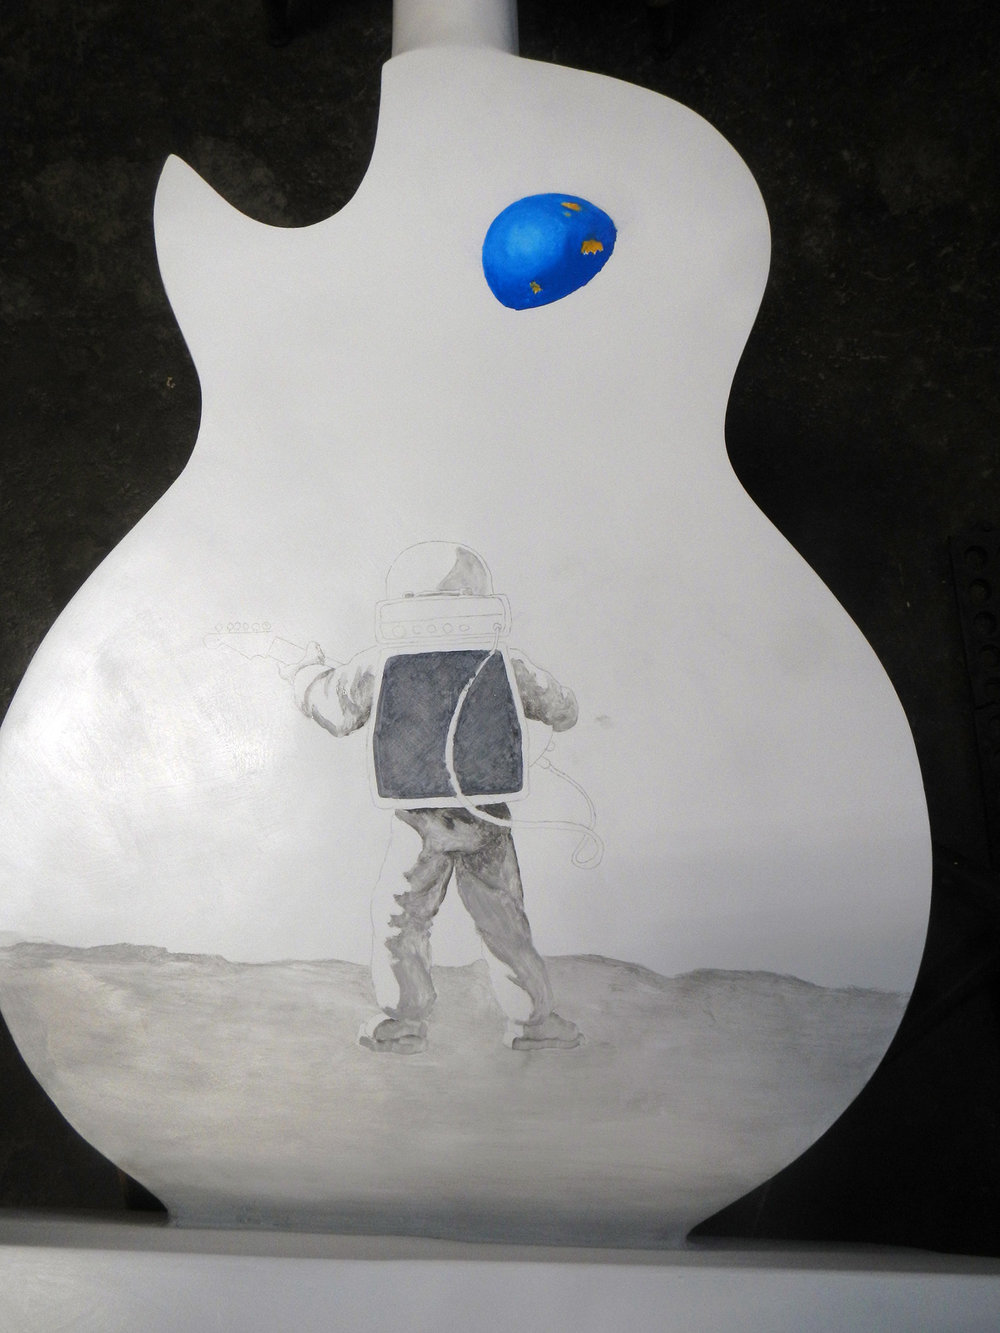 While the front was drying, I was able to flip the guitar over to start painting the back.